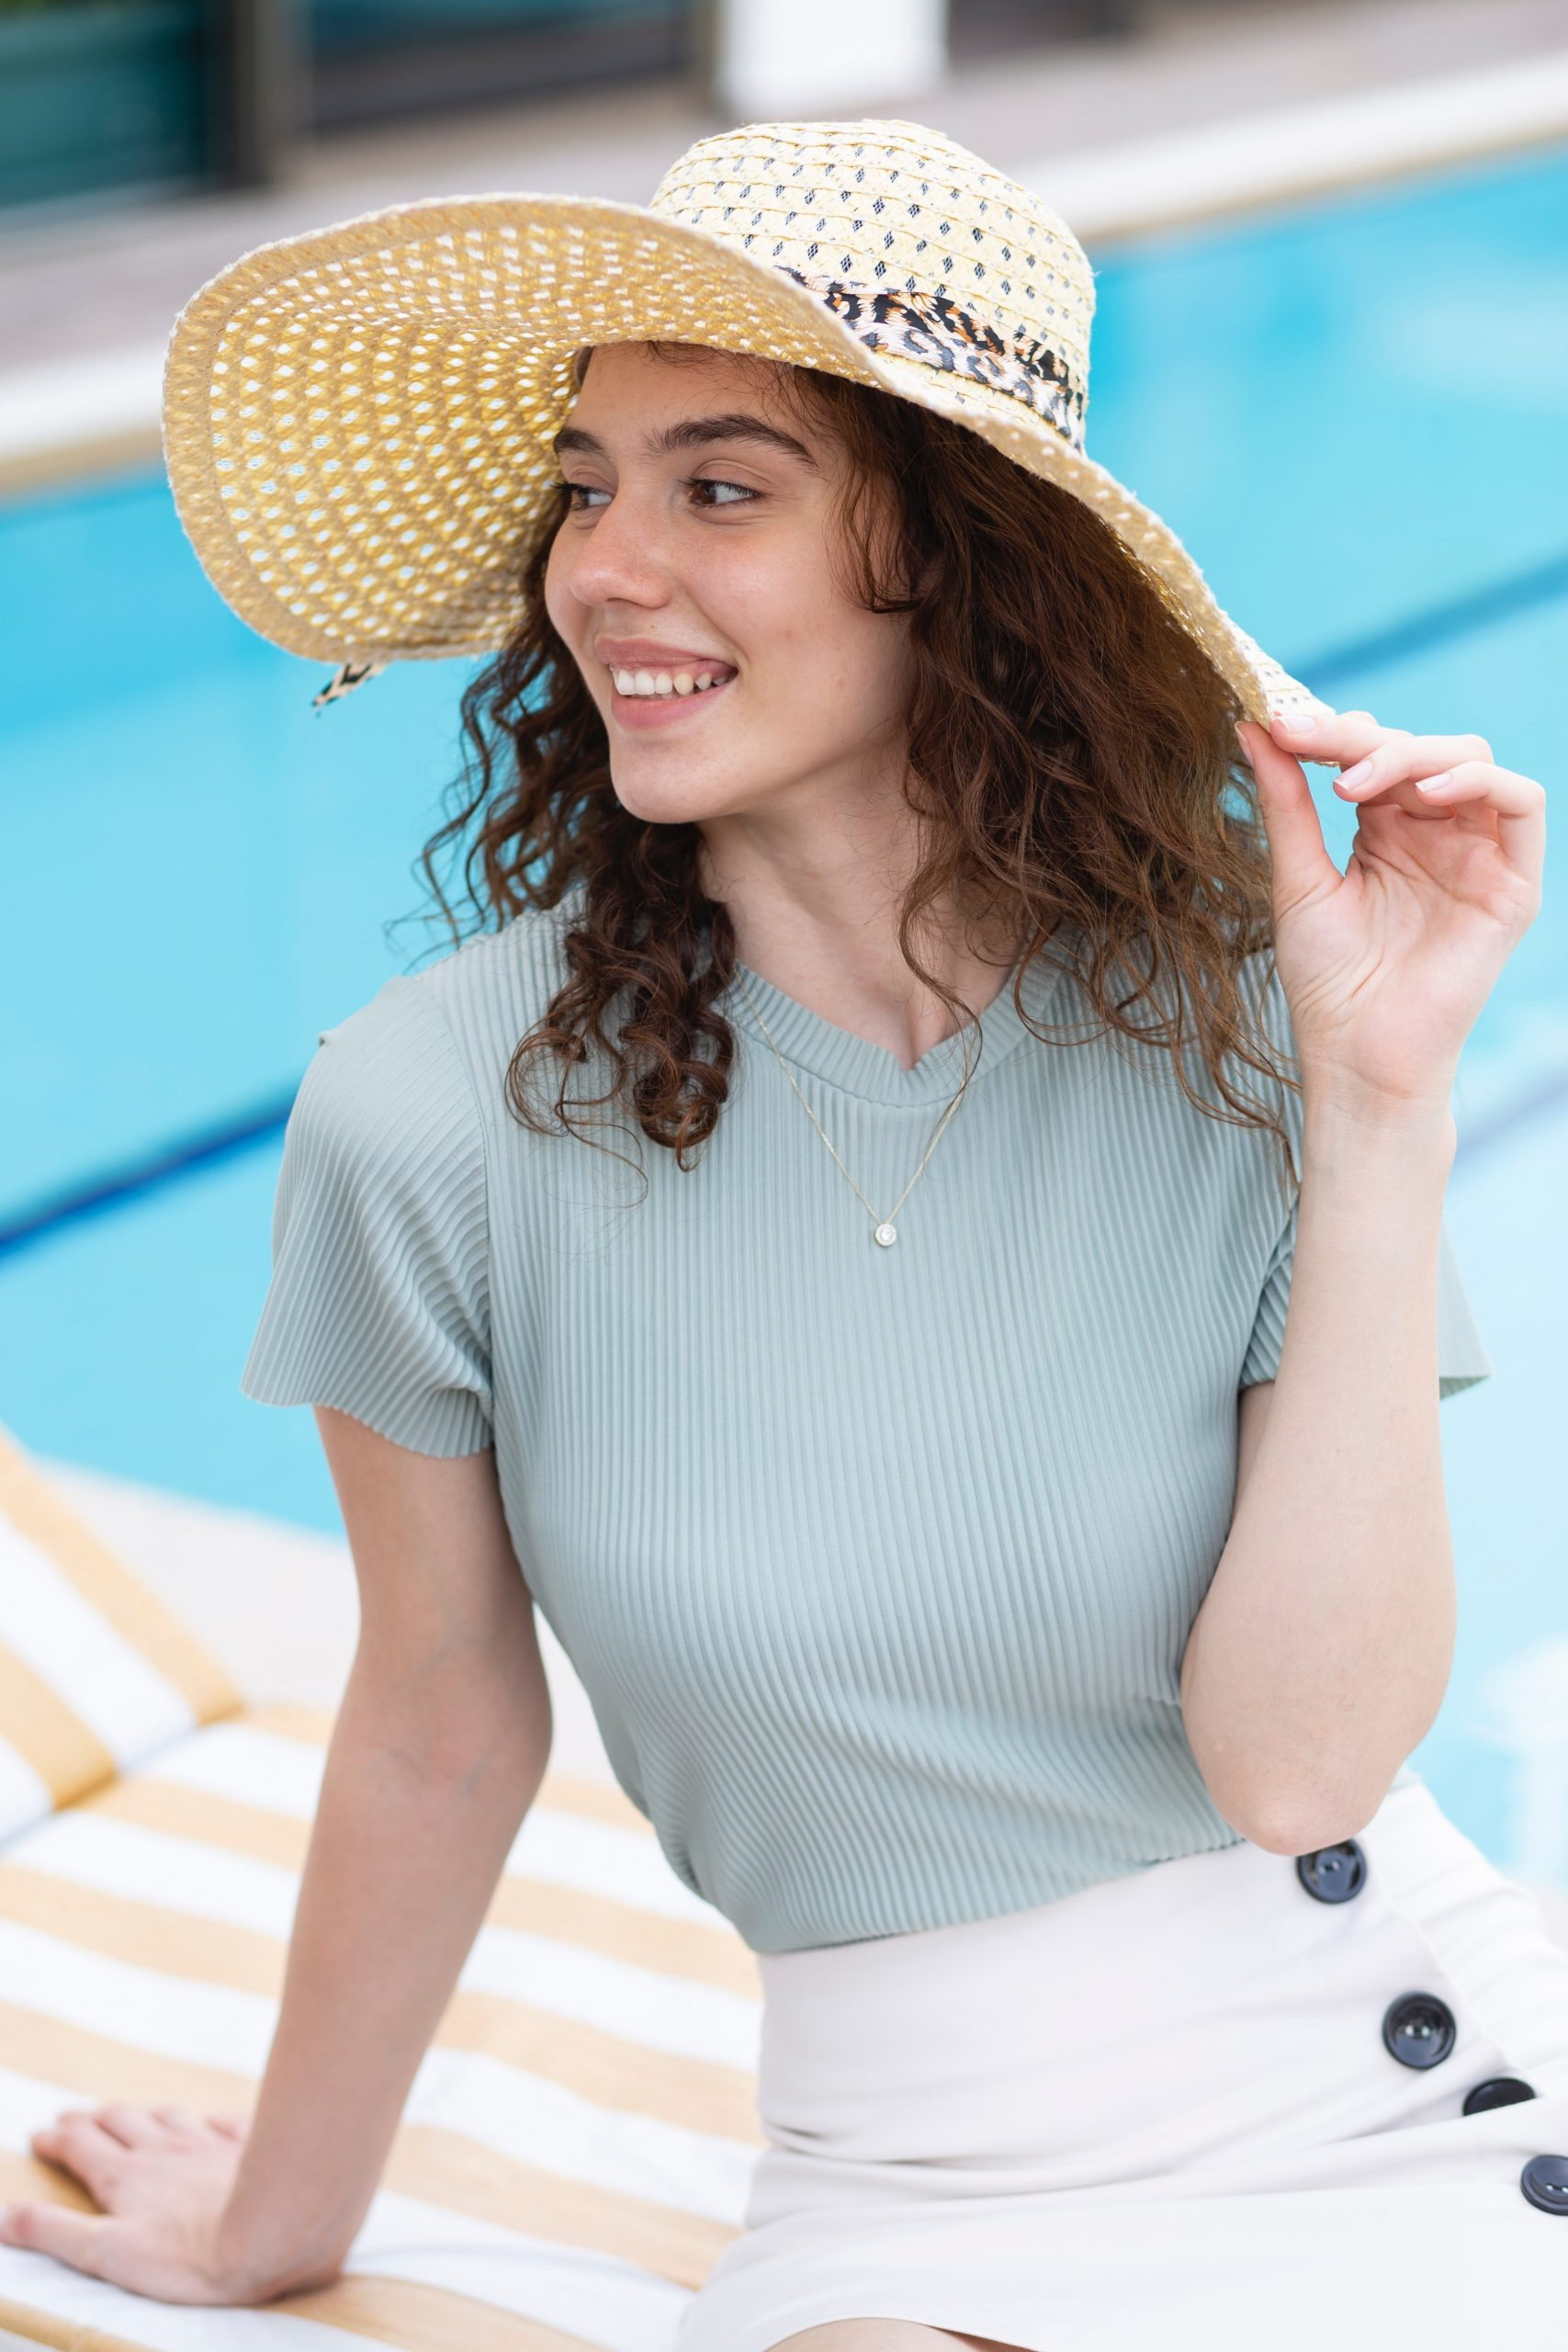 woman in white and blue striped dress wearing brown straw hat